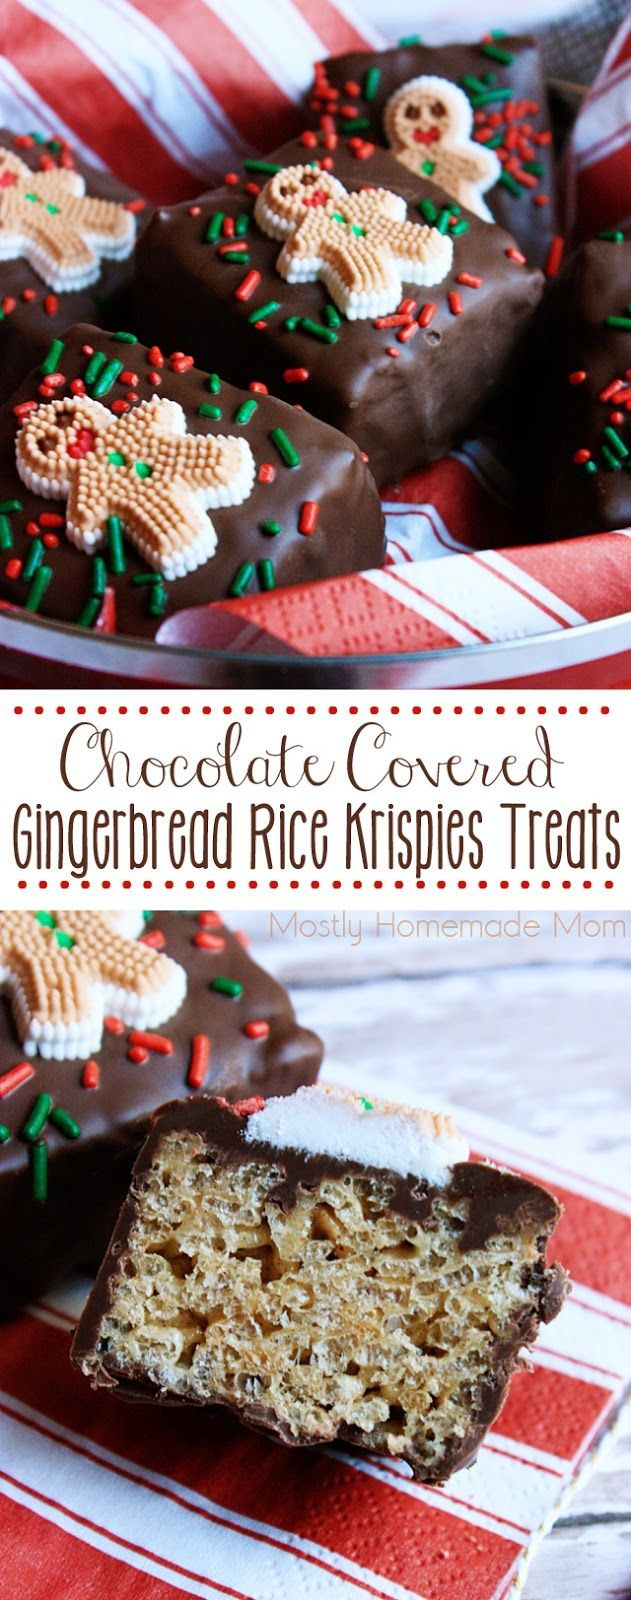 Gingerbread cake mix and cinnamon are added to the classic Rice Krispies Treats® recipe, covered in chocolate and decorated with Christmas sprinkles - these are the perfect dessert for gift giving!